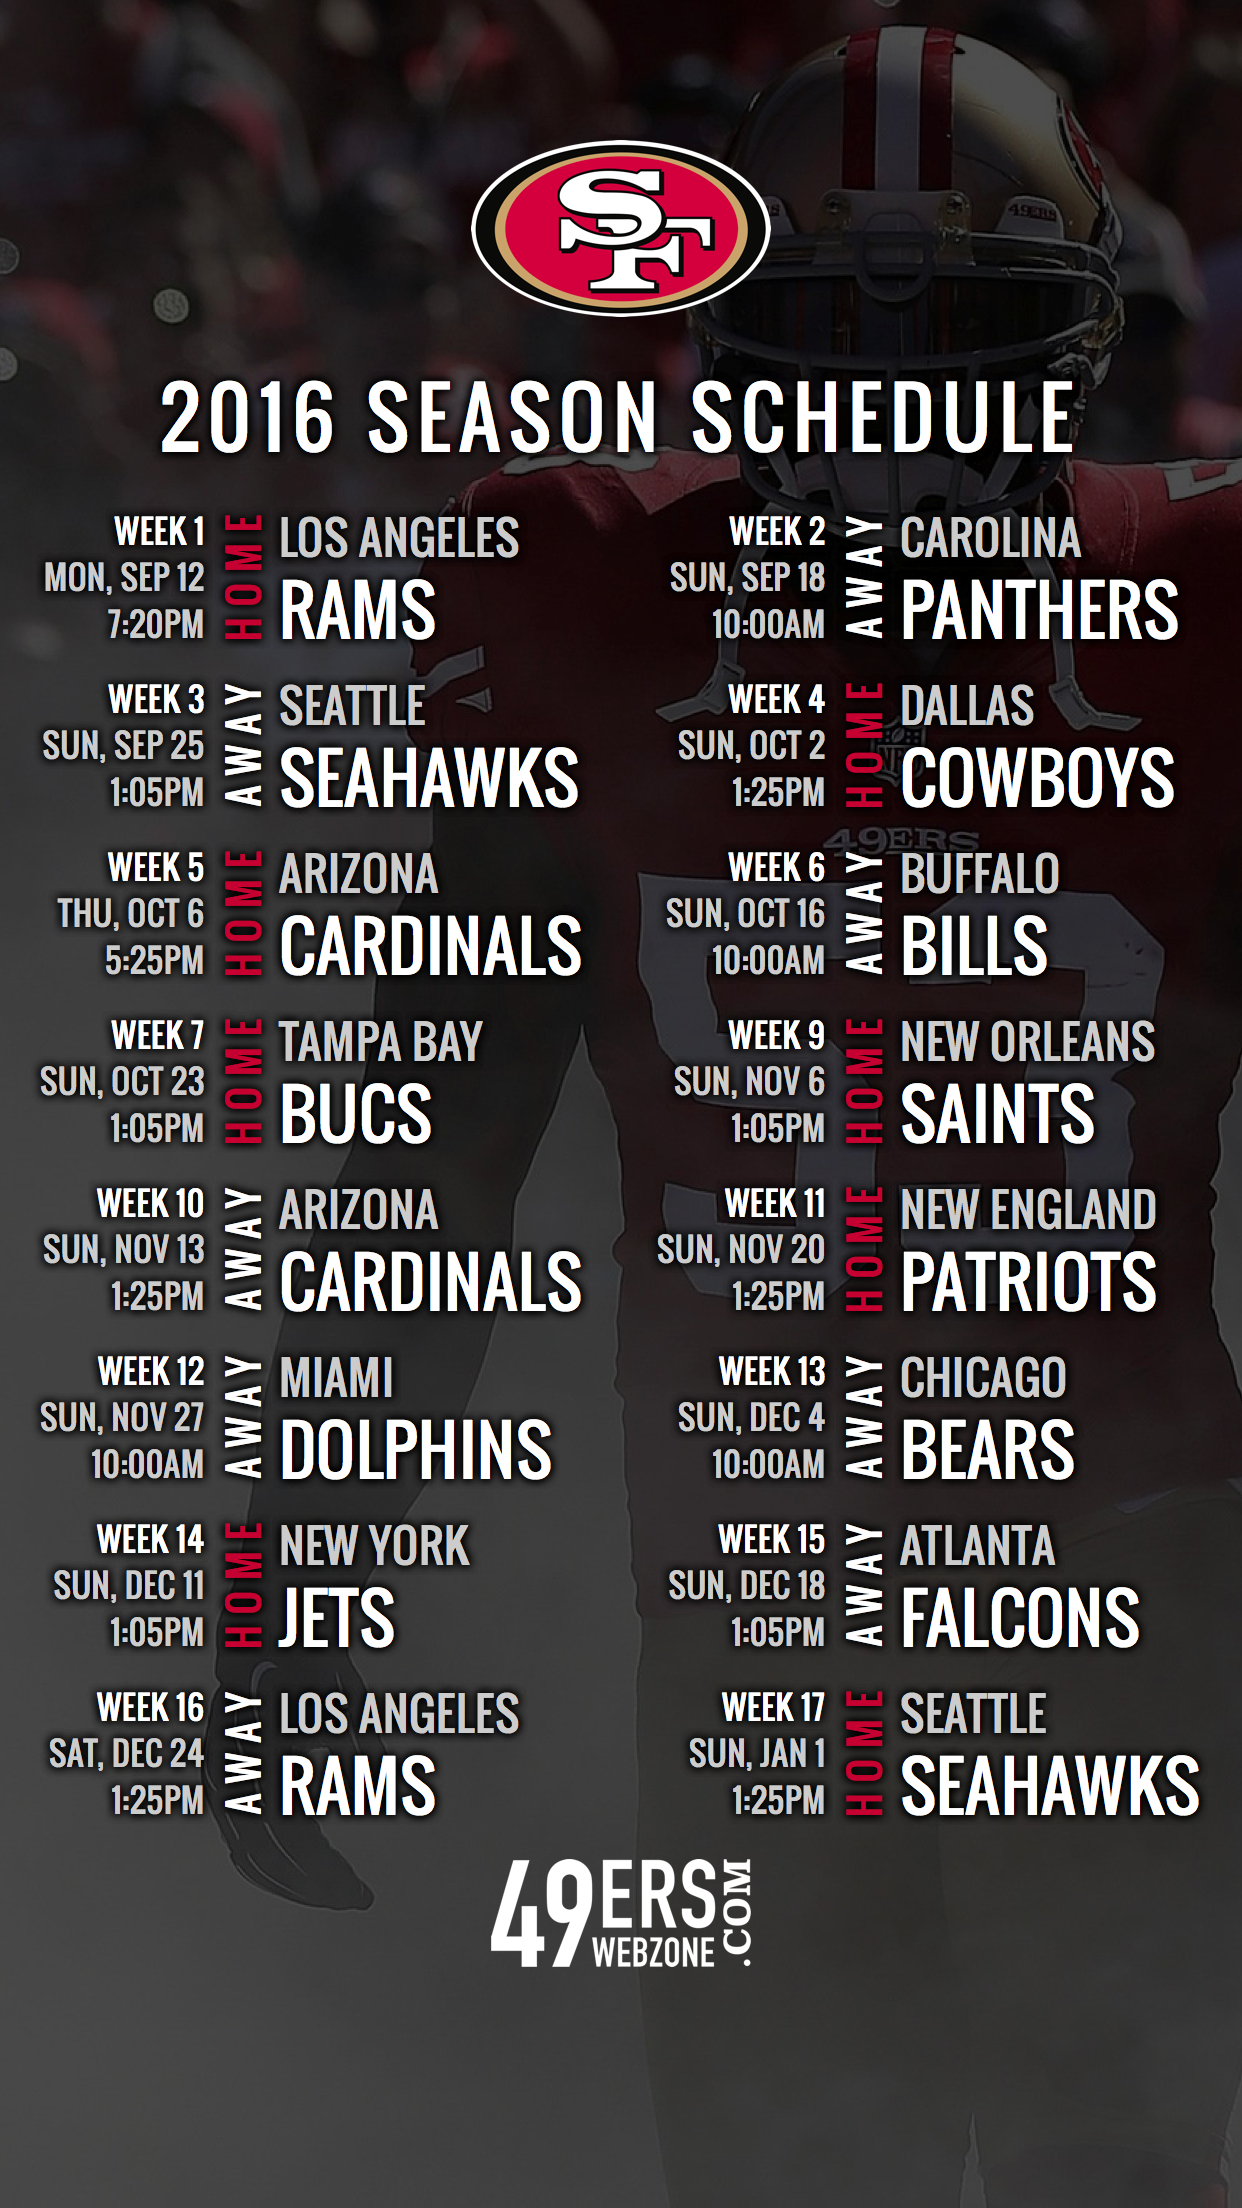 San francisco 49ers 2016 schedule wallpaper for your phone pinterest san francisco 49ers 2016 schedule wallpaper for your phone voltagebd Choice Image